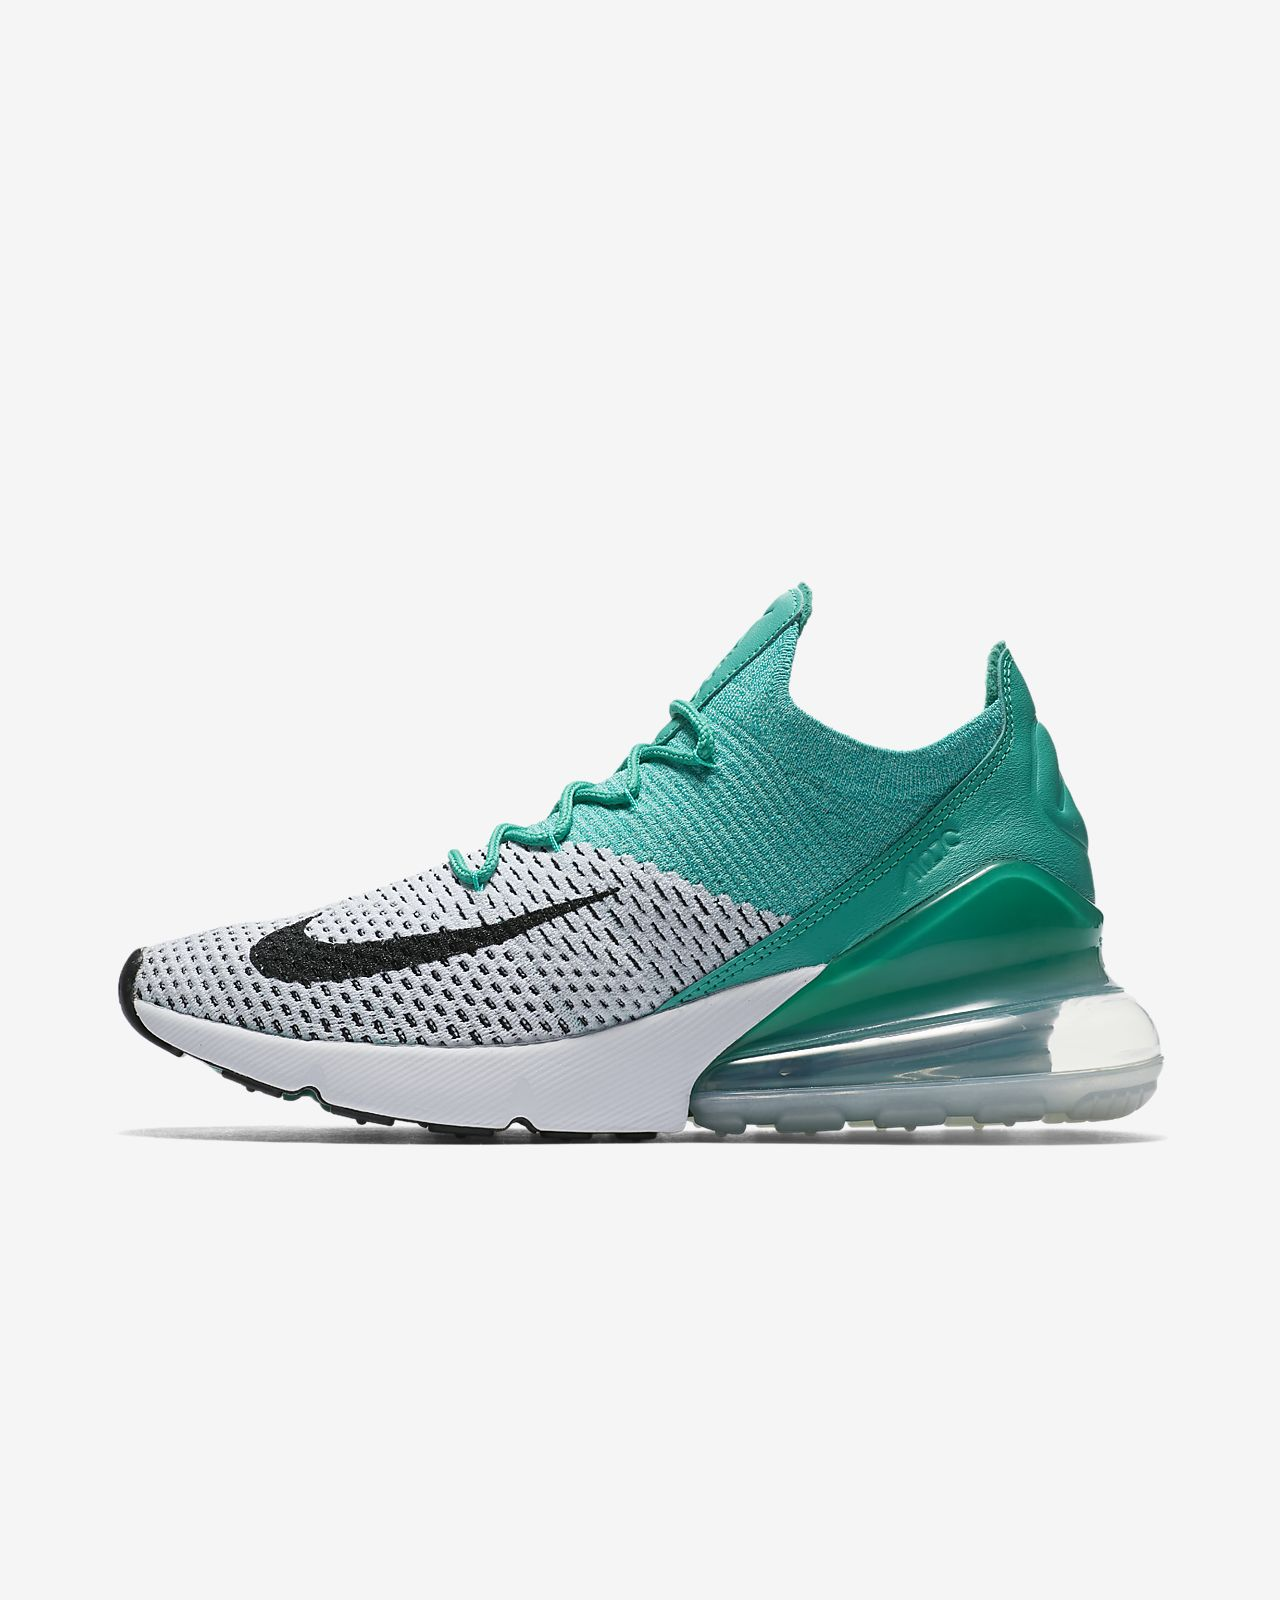 sports shoes d8d5f c2265 Calzadopara mujer Nike Air Max 270 Flyknit